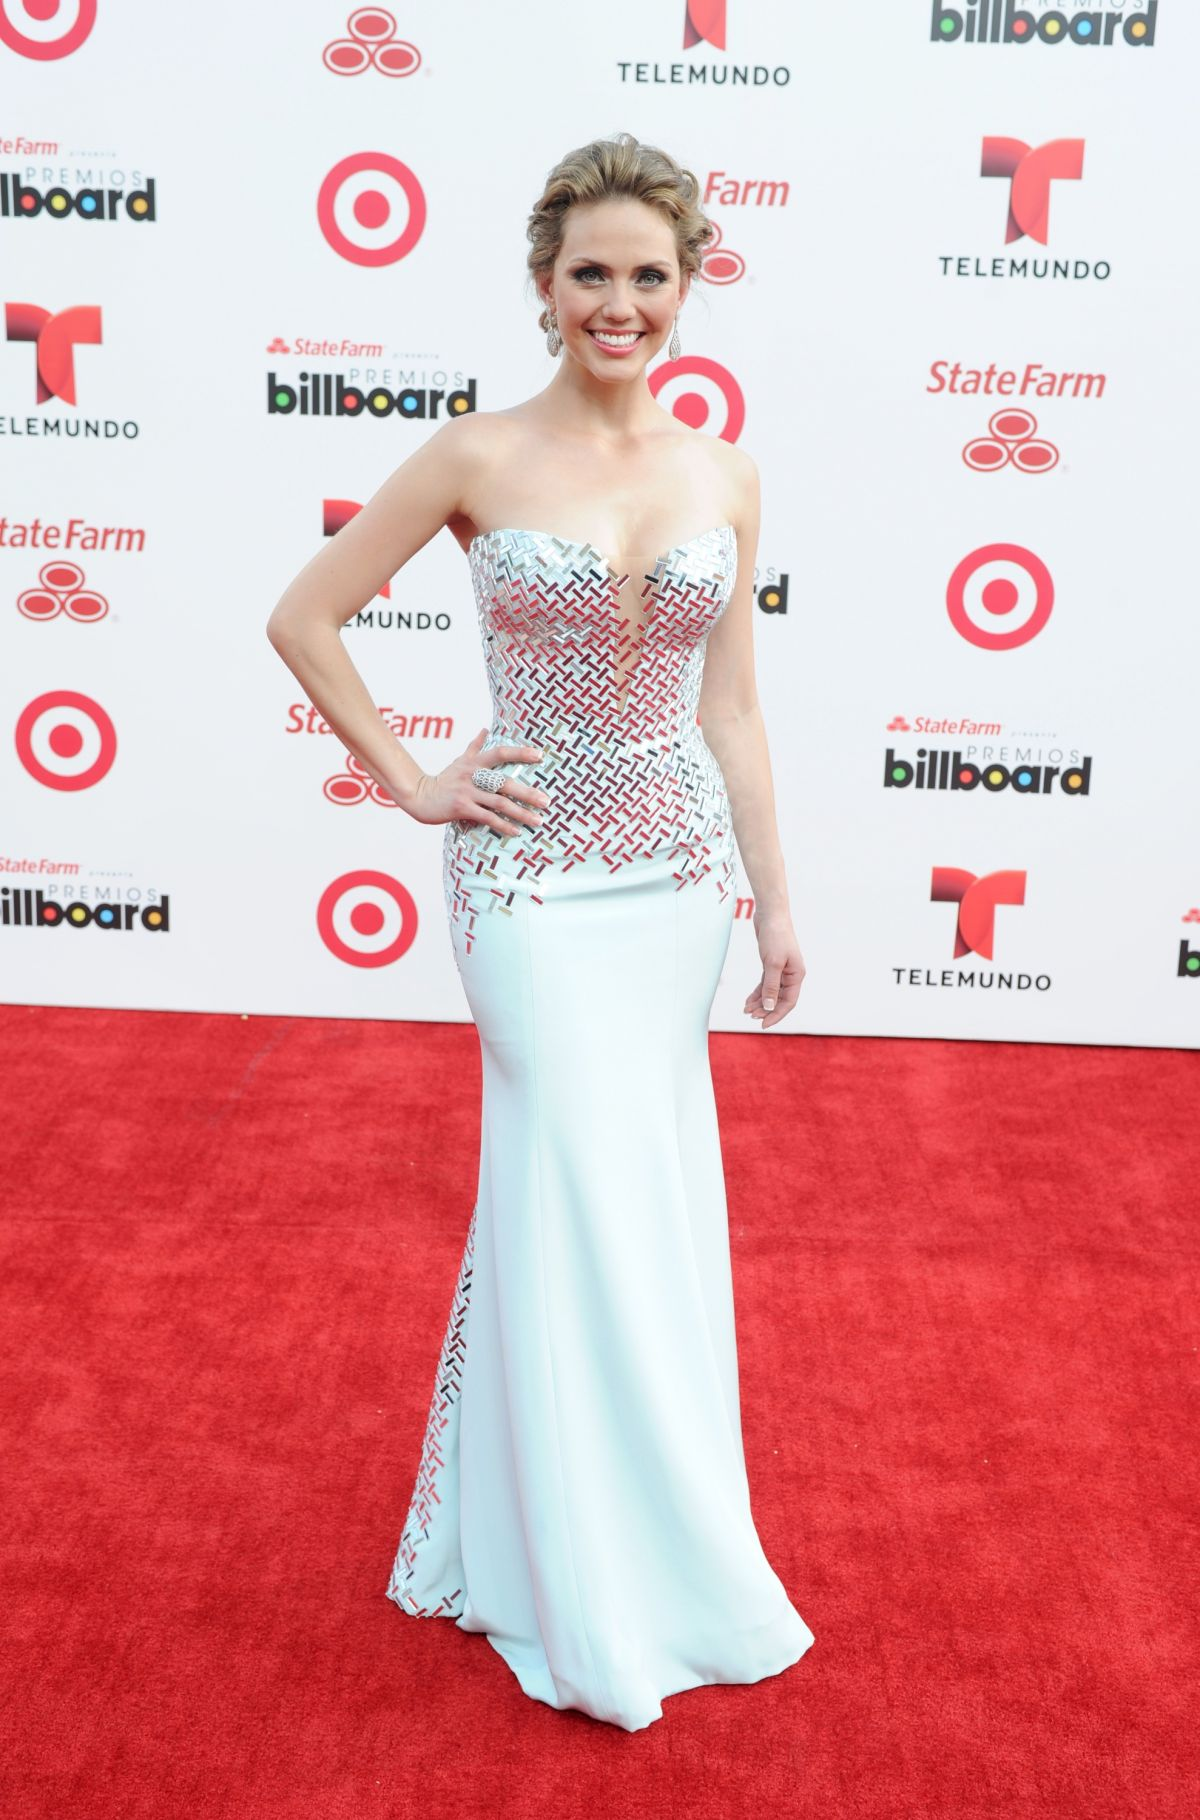 JESSICA CARRILLO at 2014 Billboard Latin Music Awards in Miami